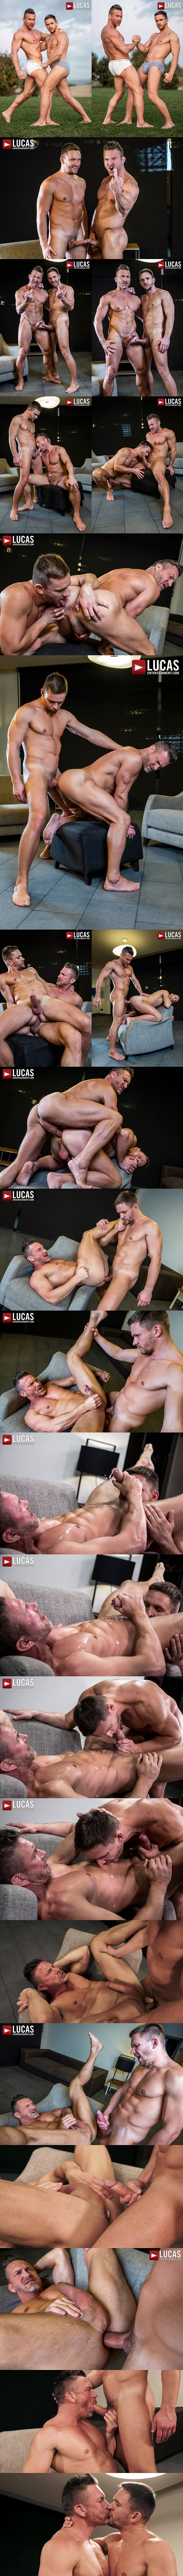 Lucasentertainment - ripped manly daddy Tomas Brand and Russian gay porn star Andrey Vic take turns barebacking each other before Andrey seed Tomas' worked hole 02